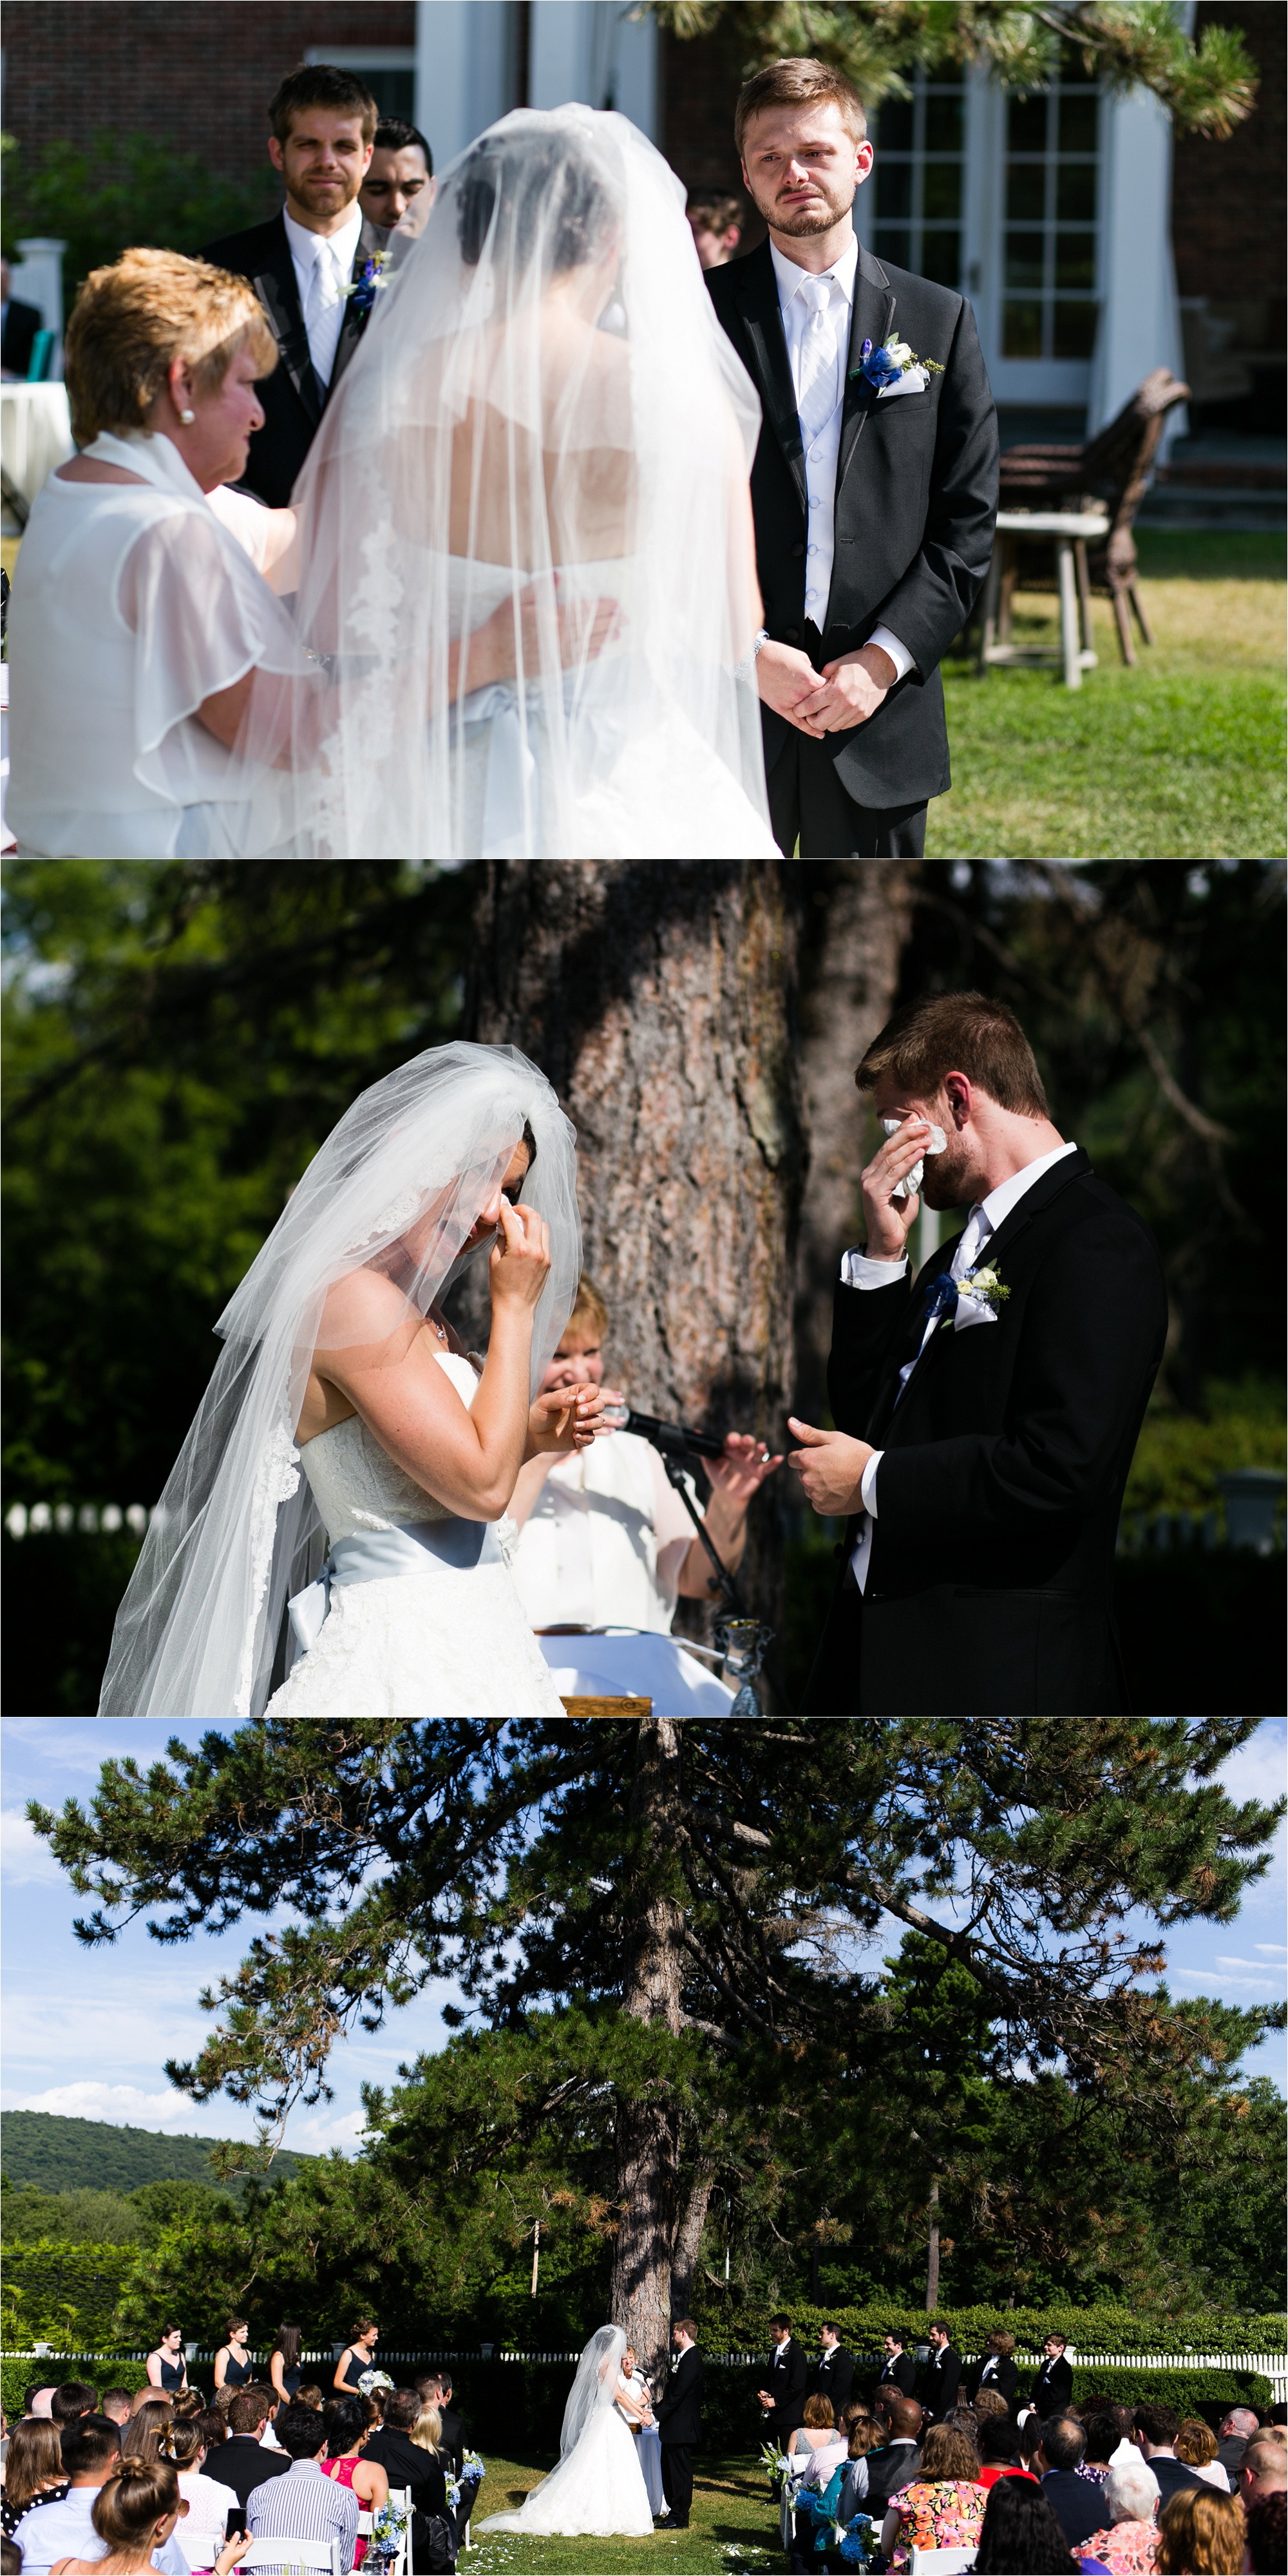 The bride and groom share a sentimental moment during their wedding ceremony